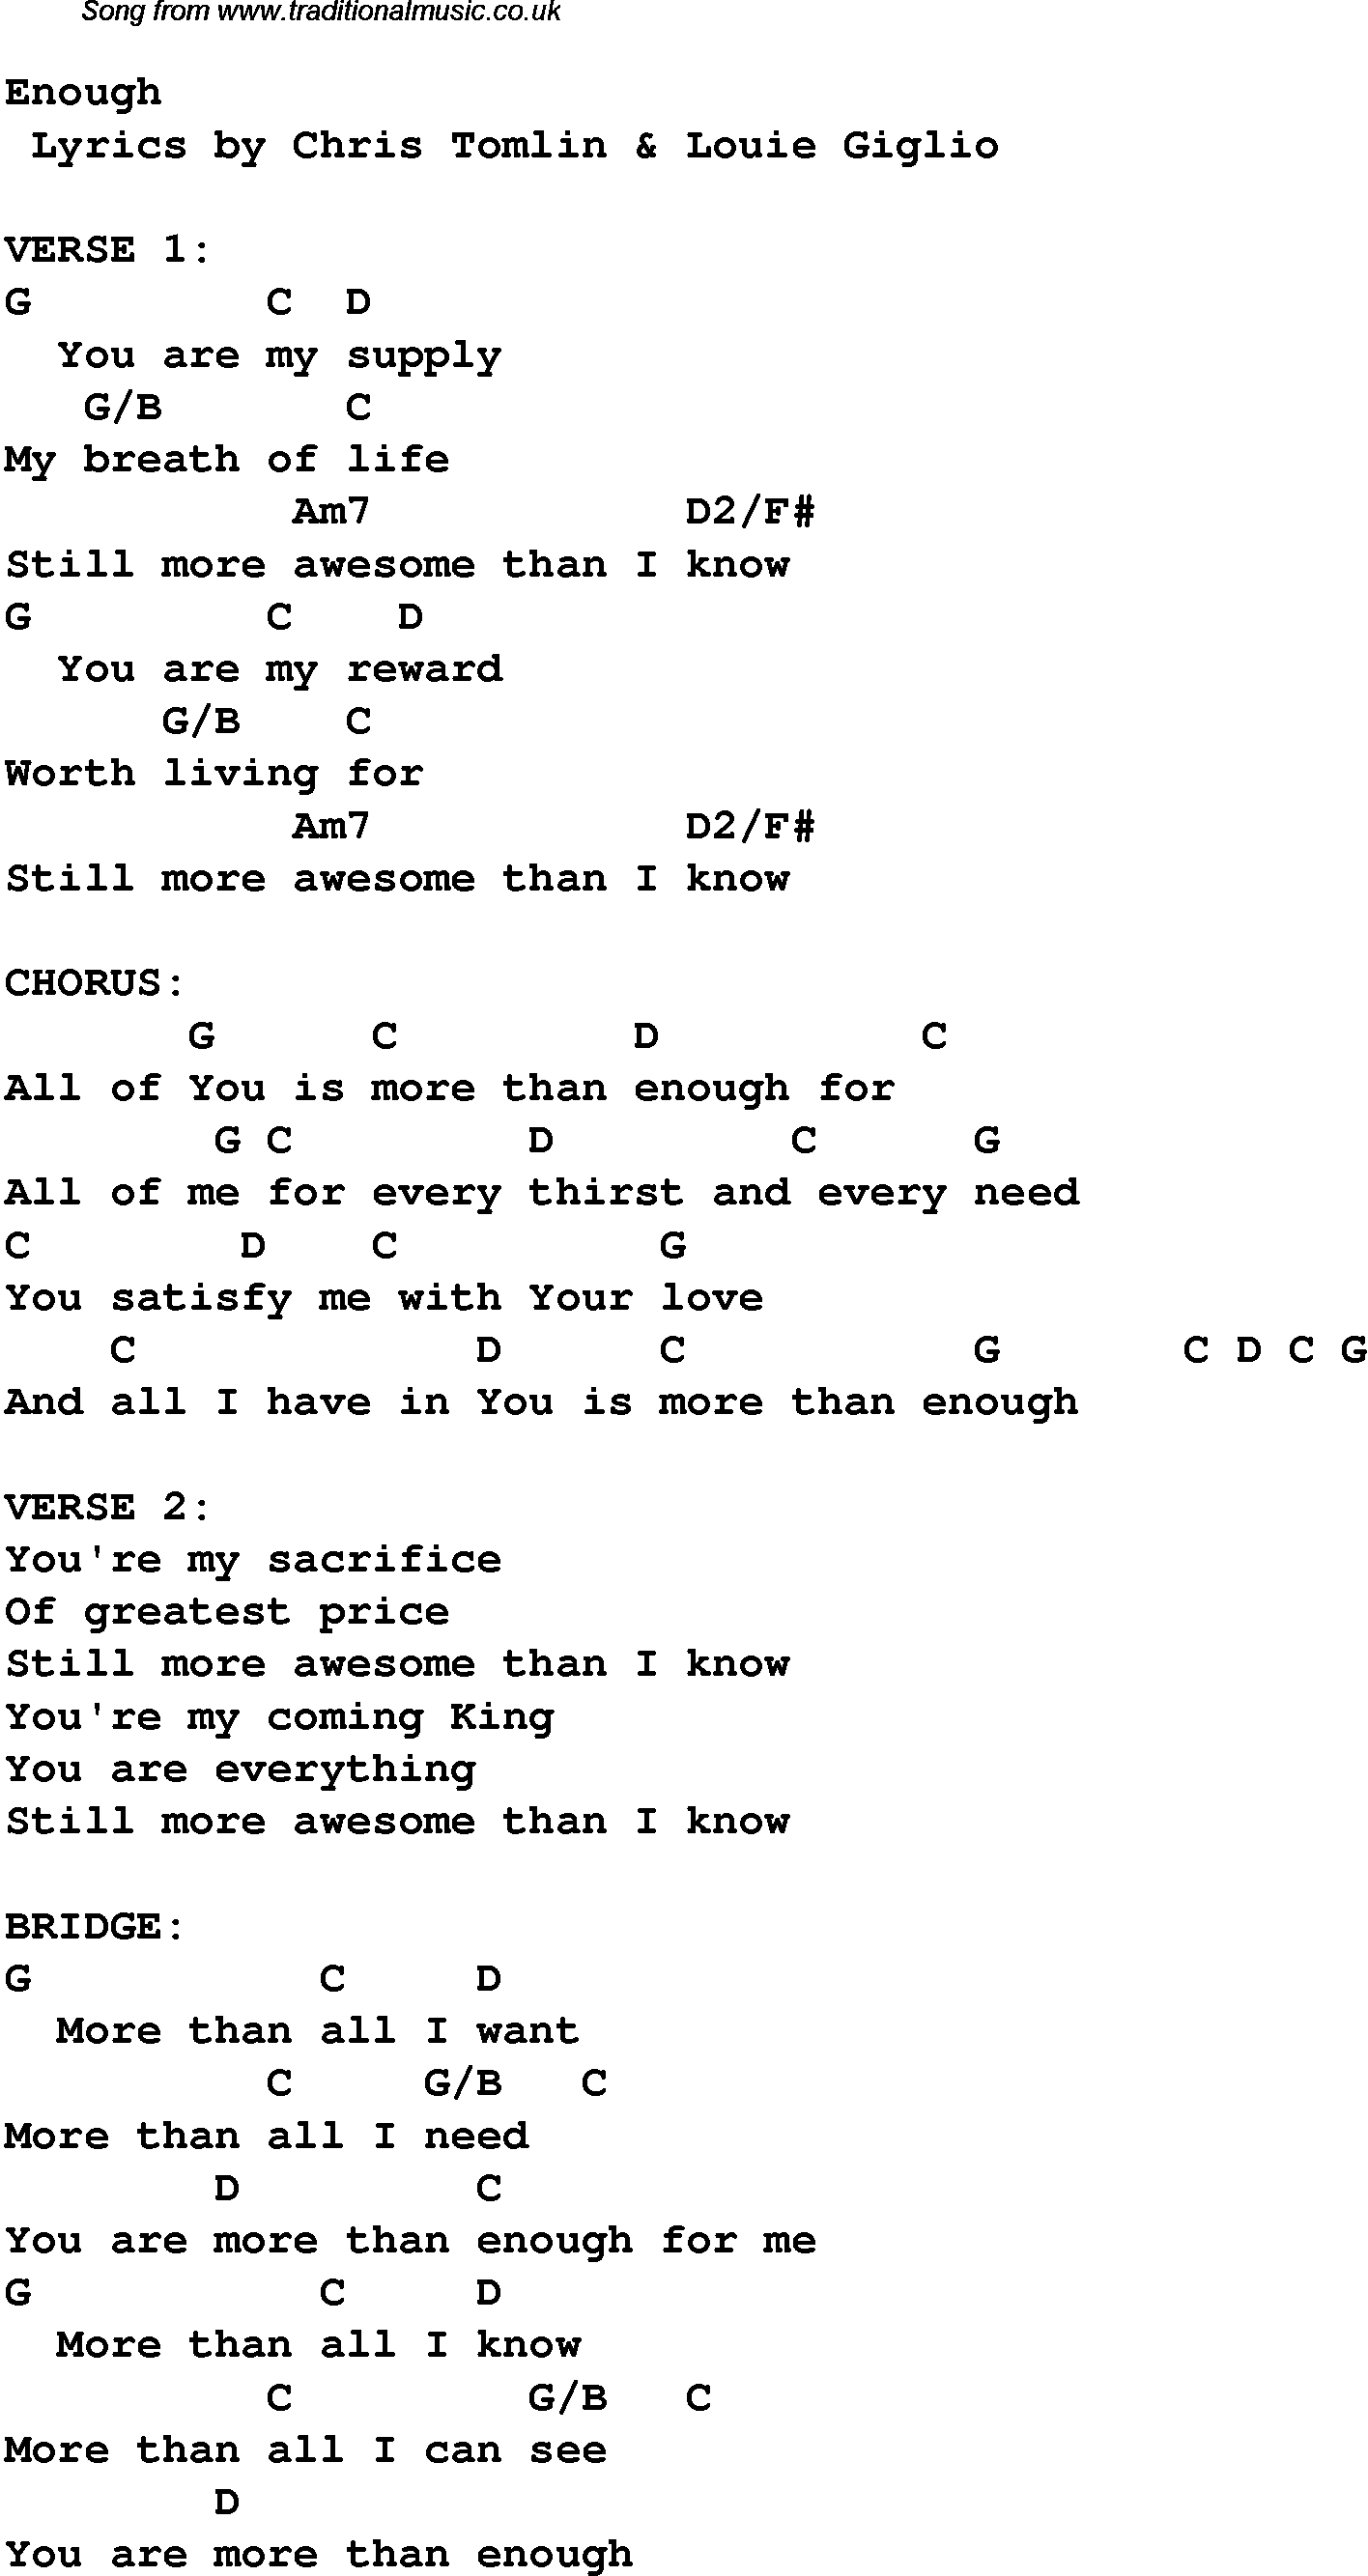 home by chris tomlin chords | Chris Tomlin search - Page 1 ...